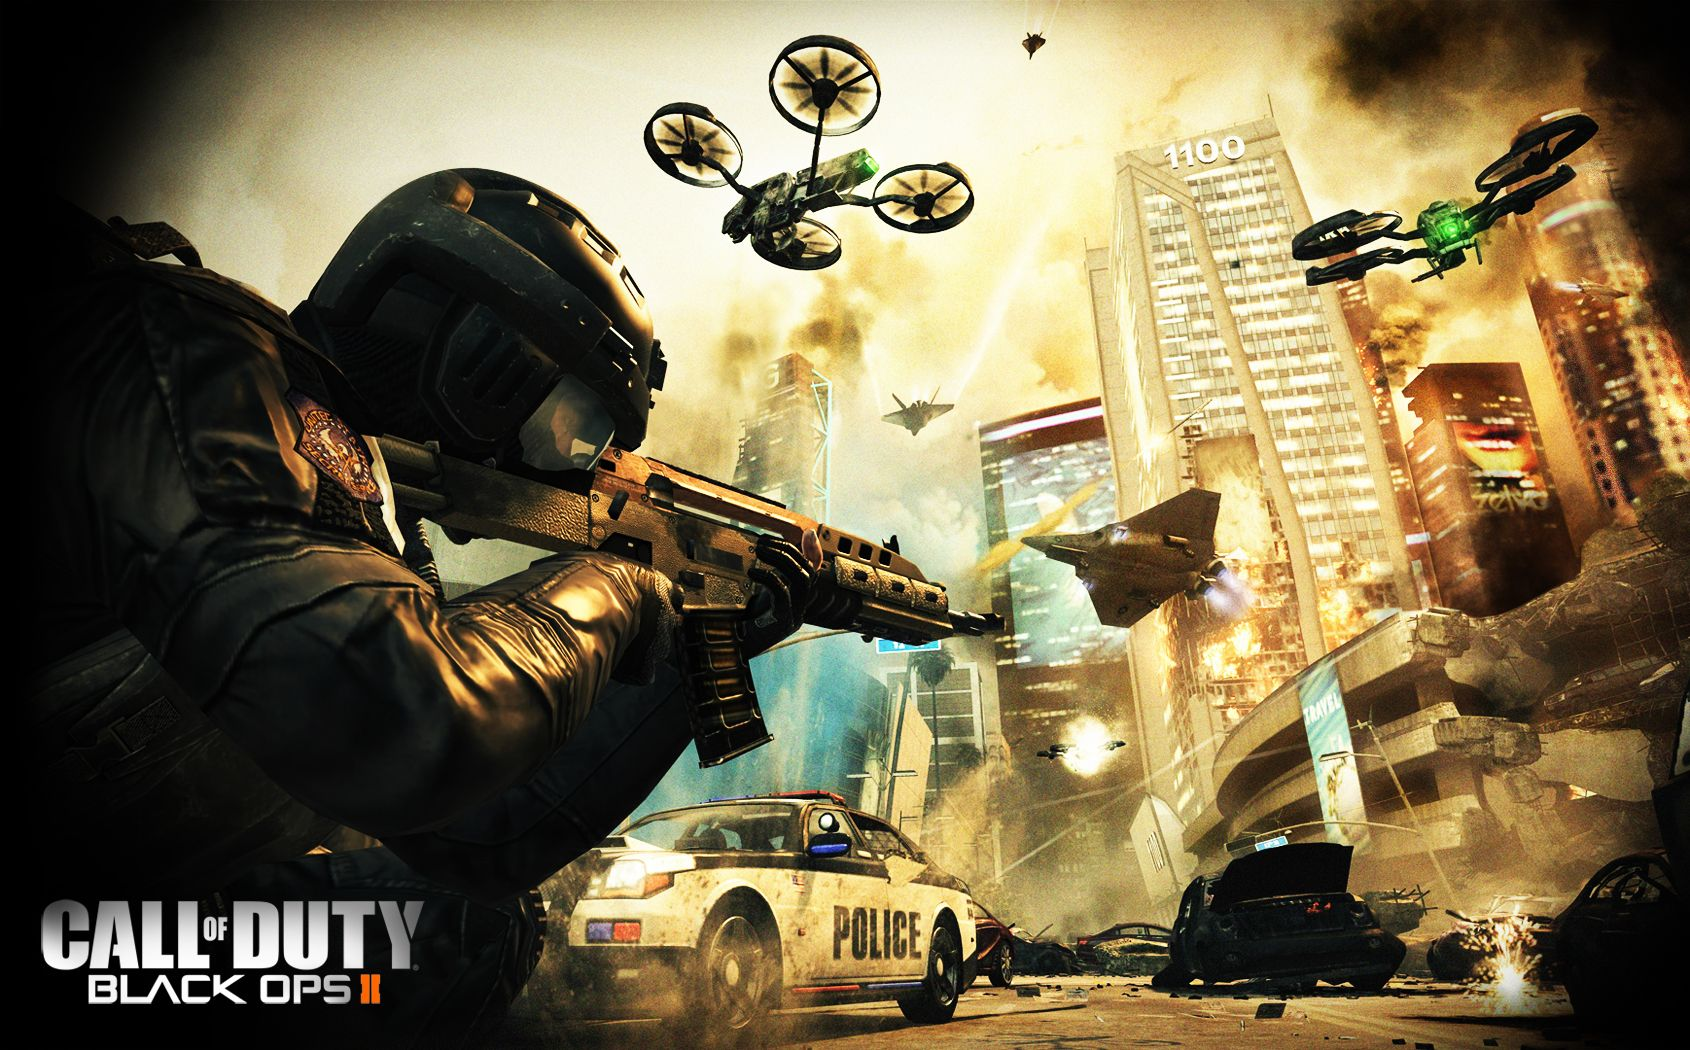 Why call of duty black ops 2 may never be backward compatible on